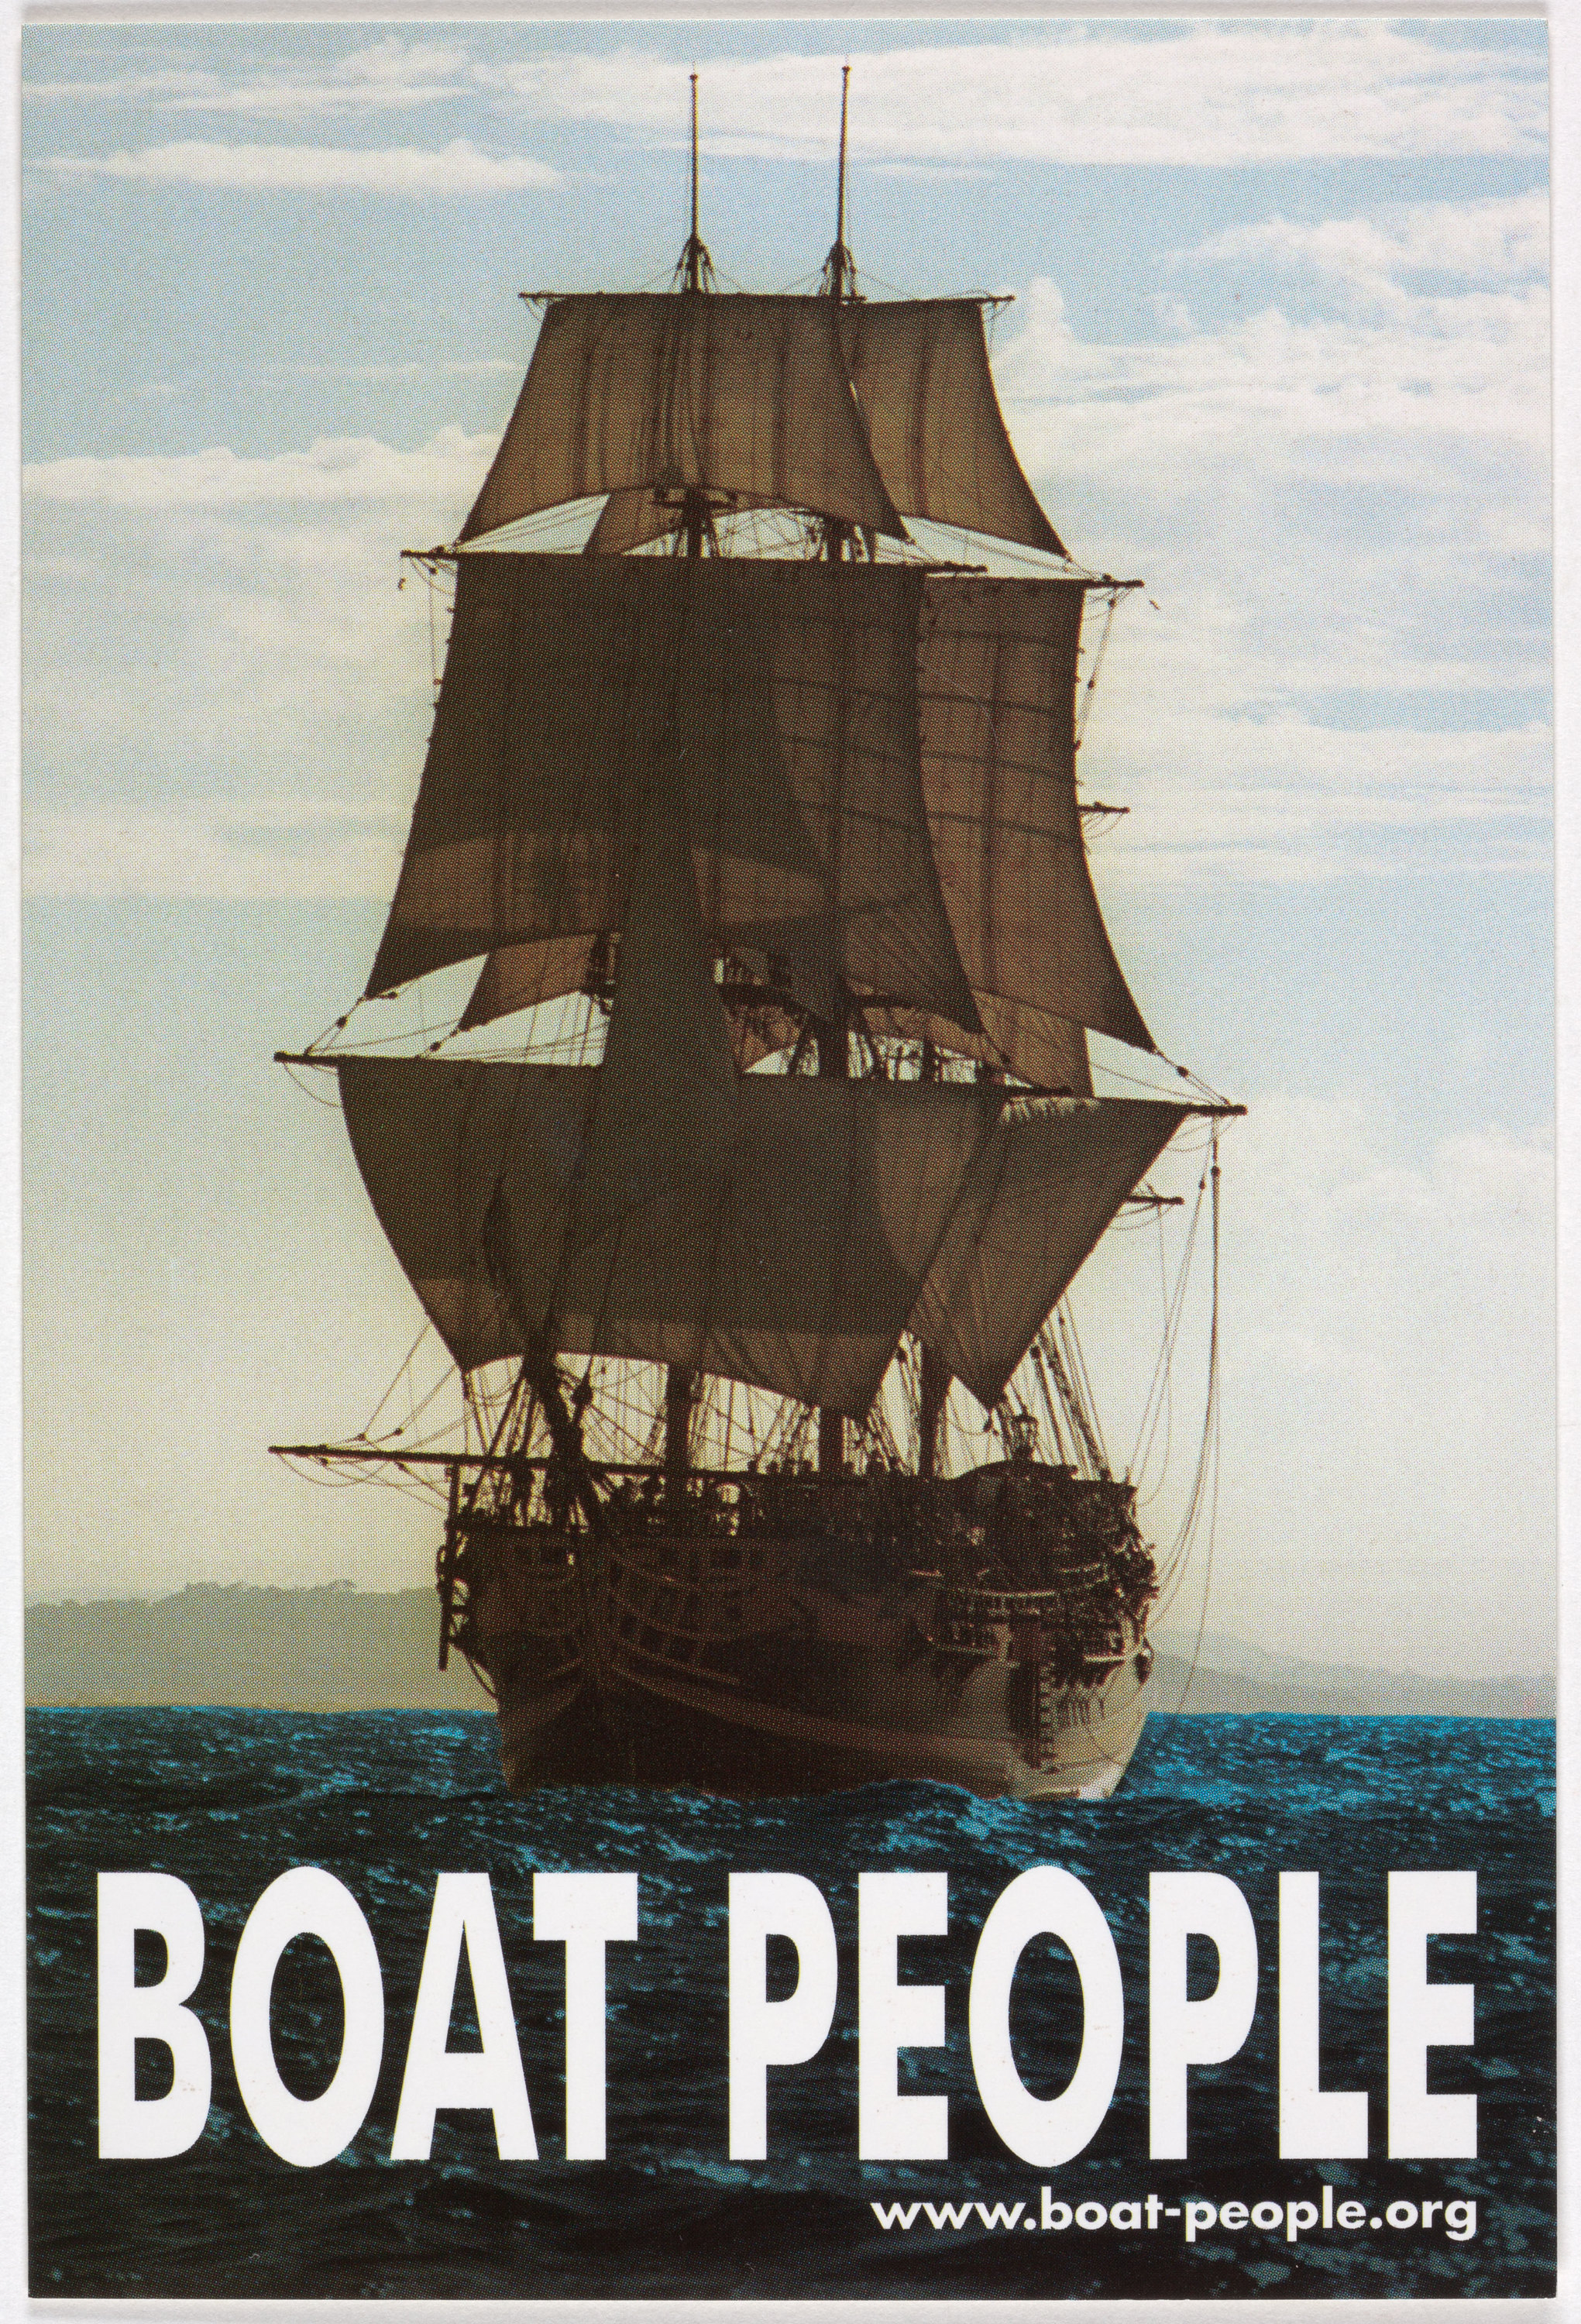 A colonial ship with large sails crosses the ocean. In large, bold white print at the bottom of the poster are the words 'BOAT PEOPLE'.